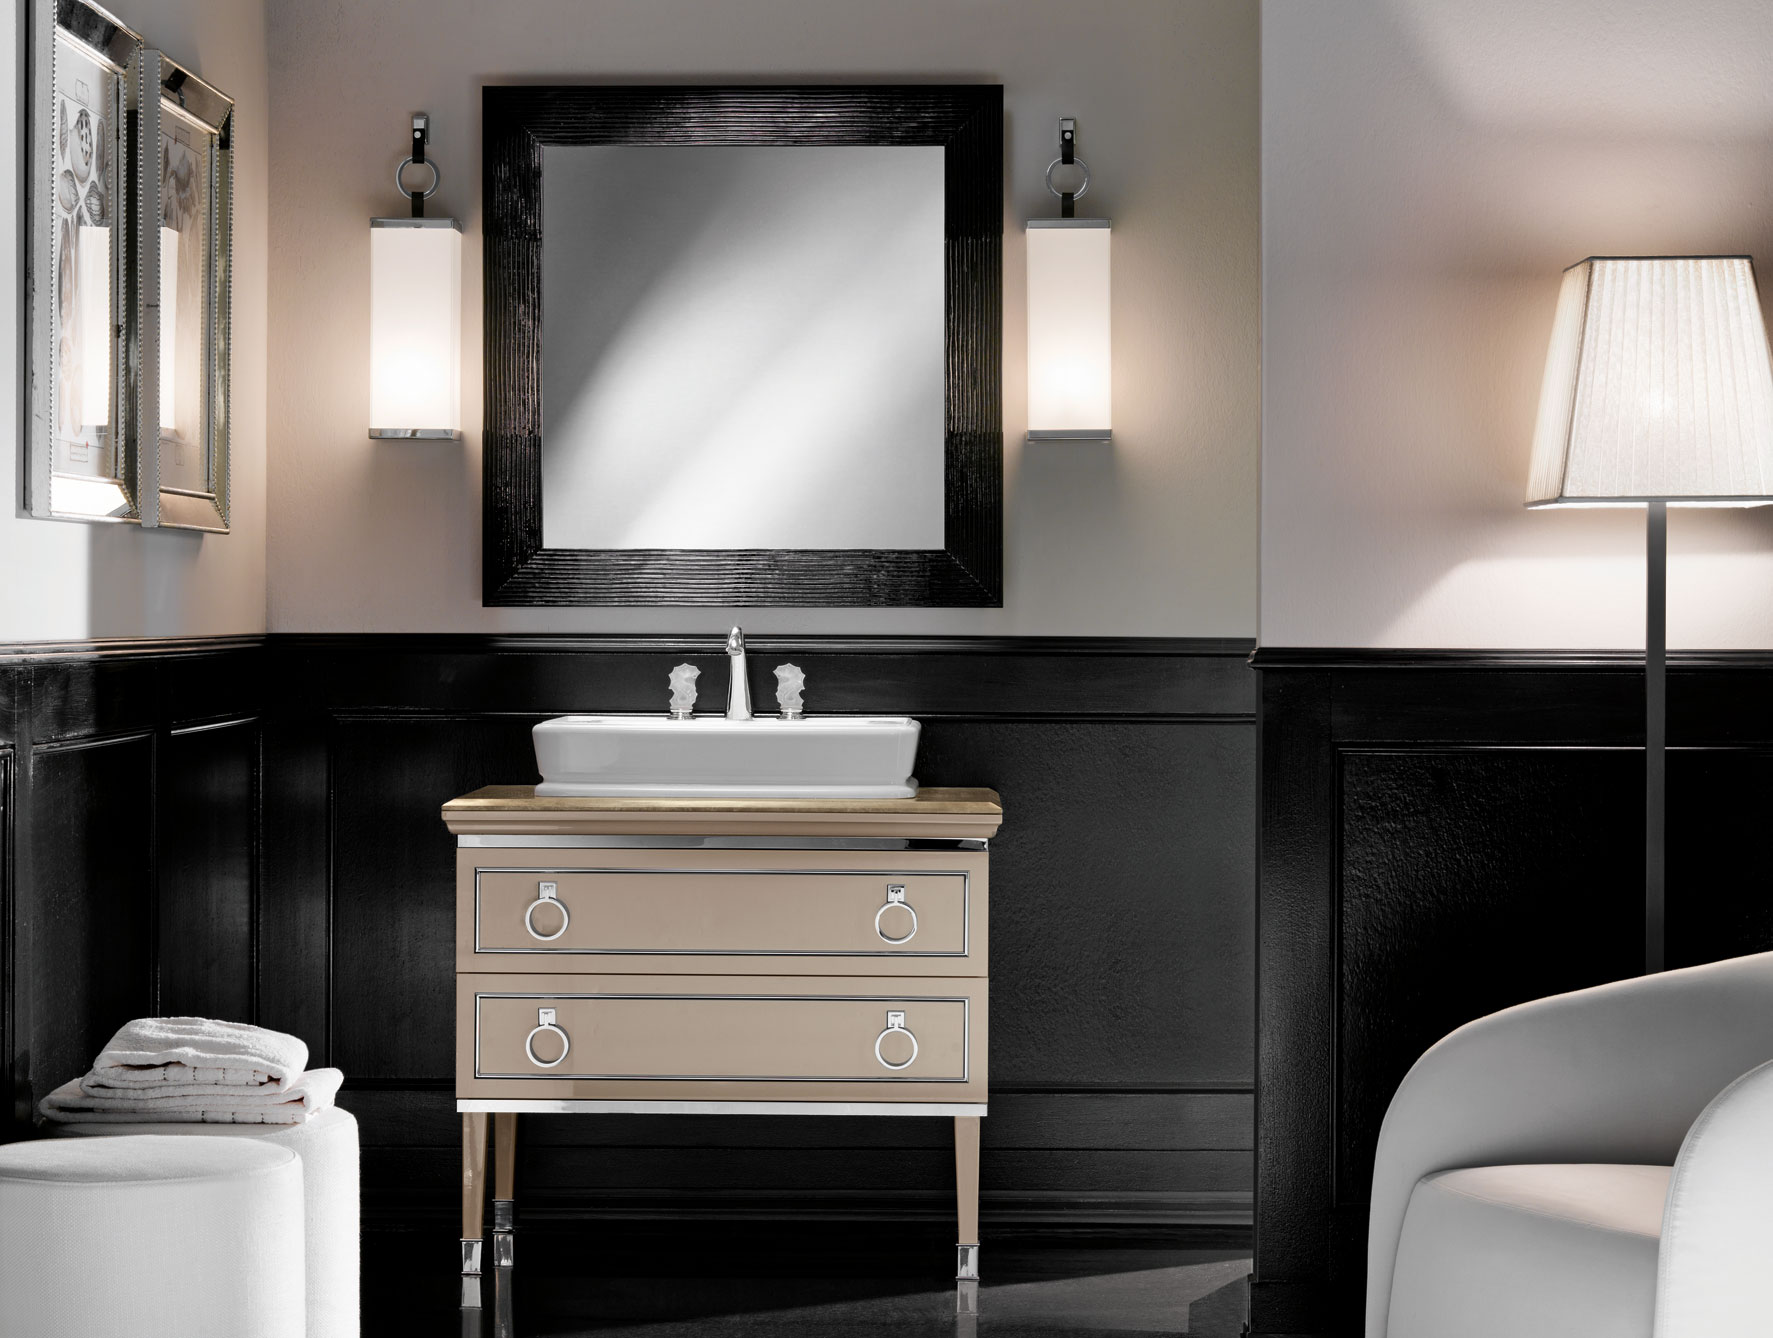 Lastest Art Deco Bathroom Collection By Bisazza  Furniture Fashion